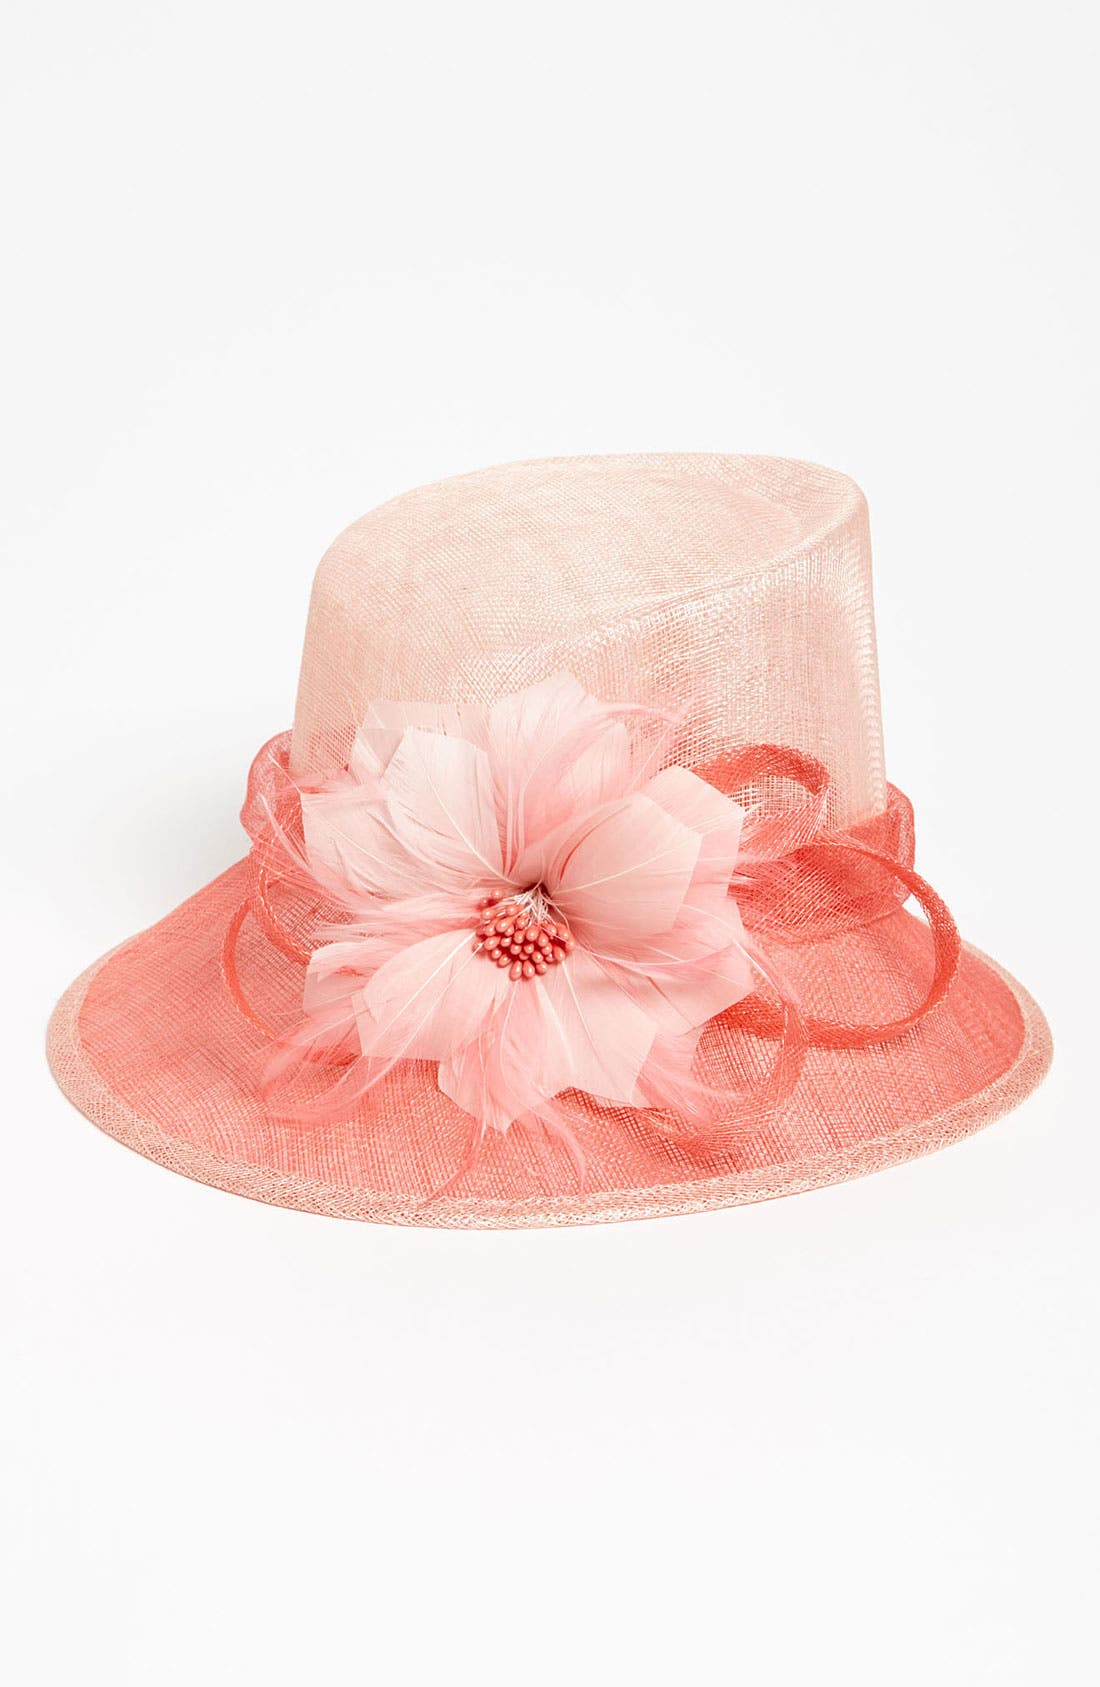 Alternate Image 1 Selected - Nordstrom 'Asymmetrical Crown' Derby Hat